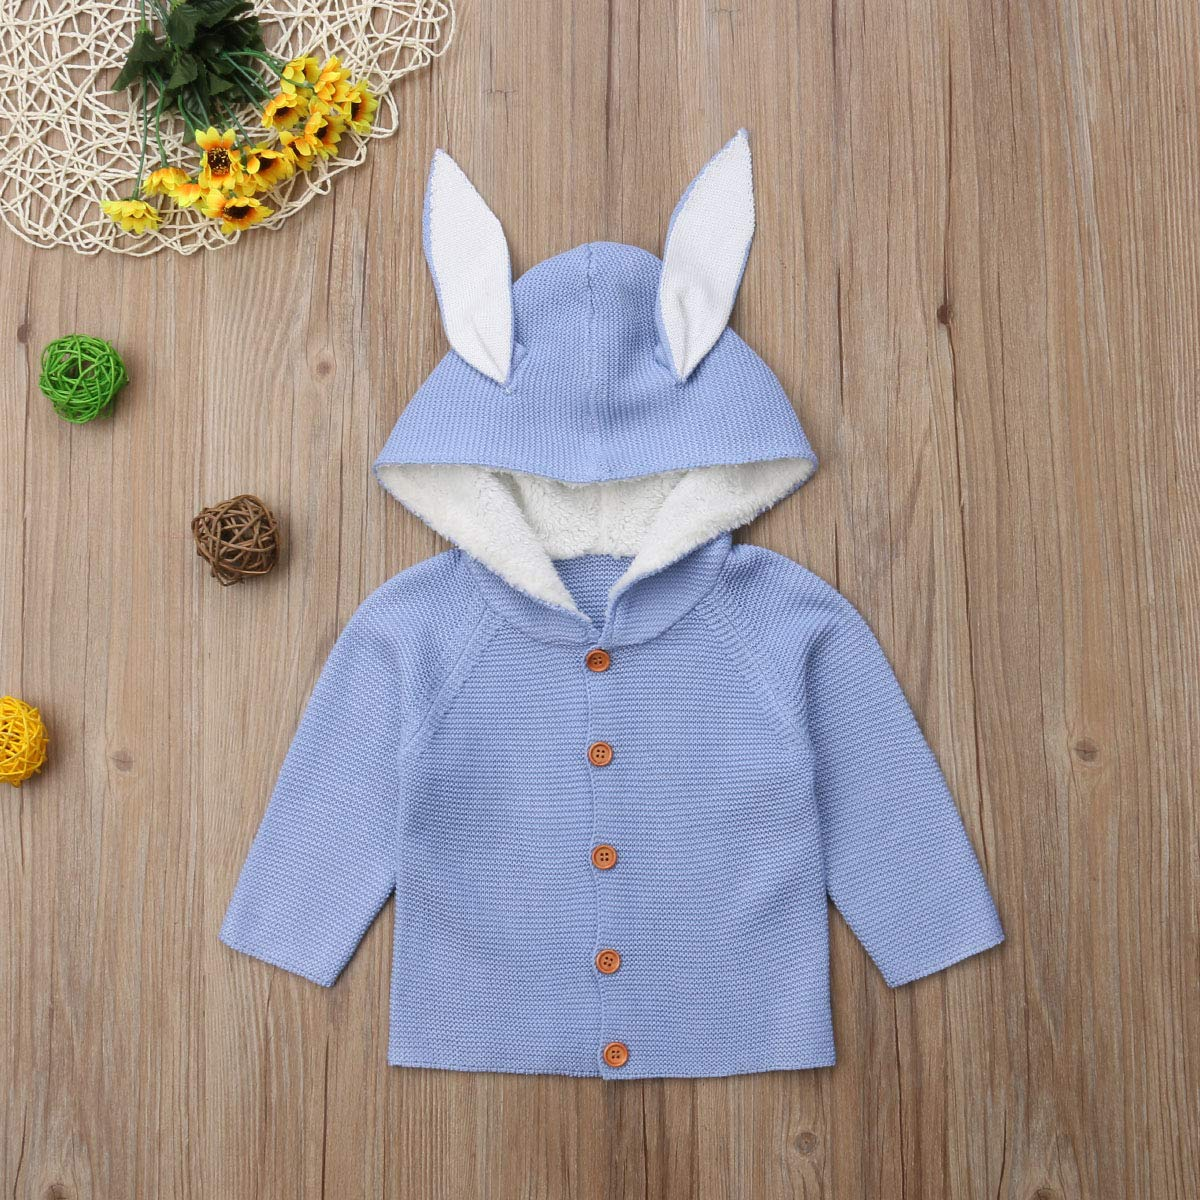 Newborn Baby Girl//Boy Long Sleeve Knitted Sweater Cardigan Rabbit Ear Hooded Outerwear Jacket Winter Warm Clothes